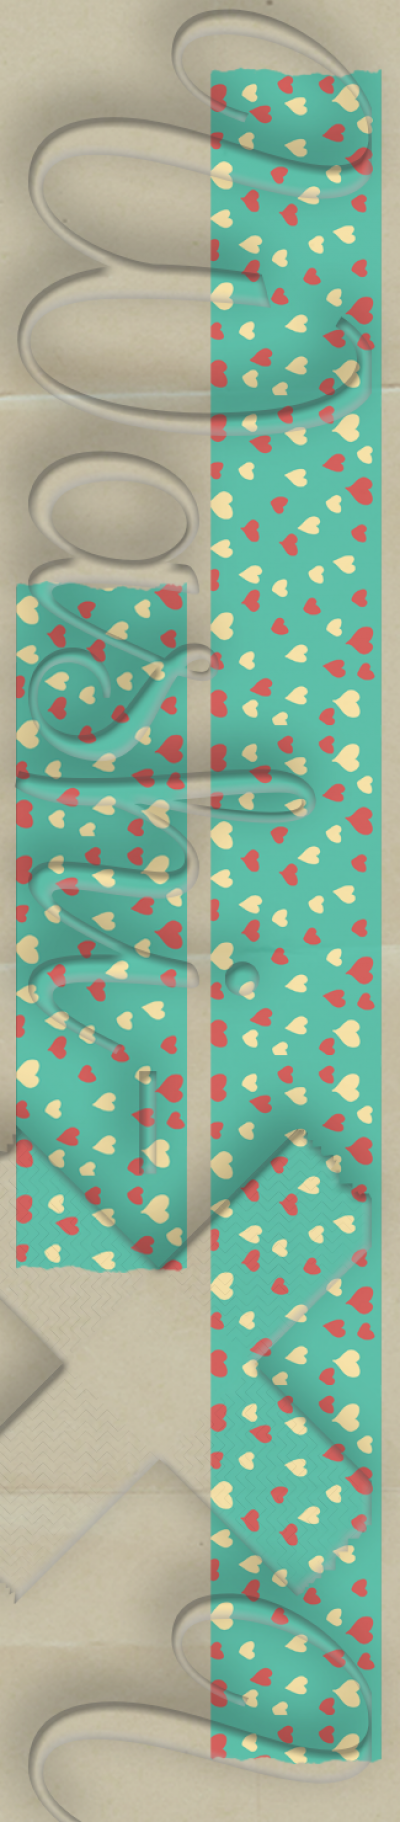 Red-white hearts patterned washi tape